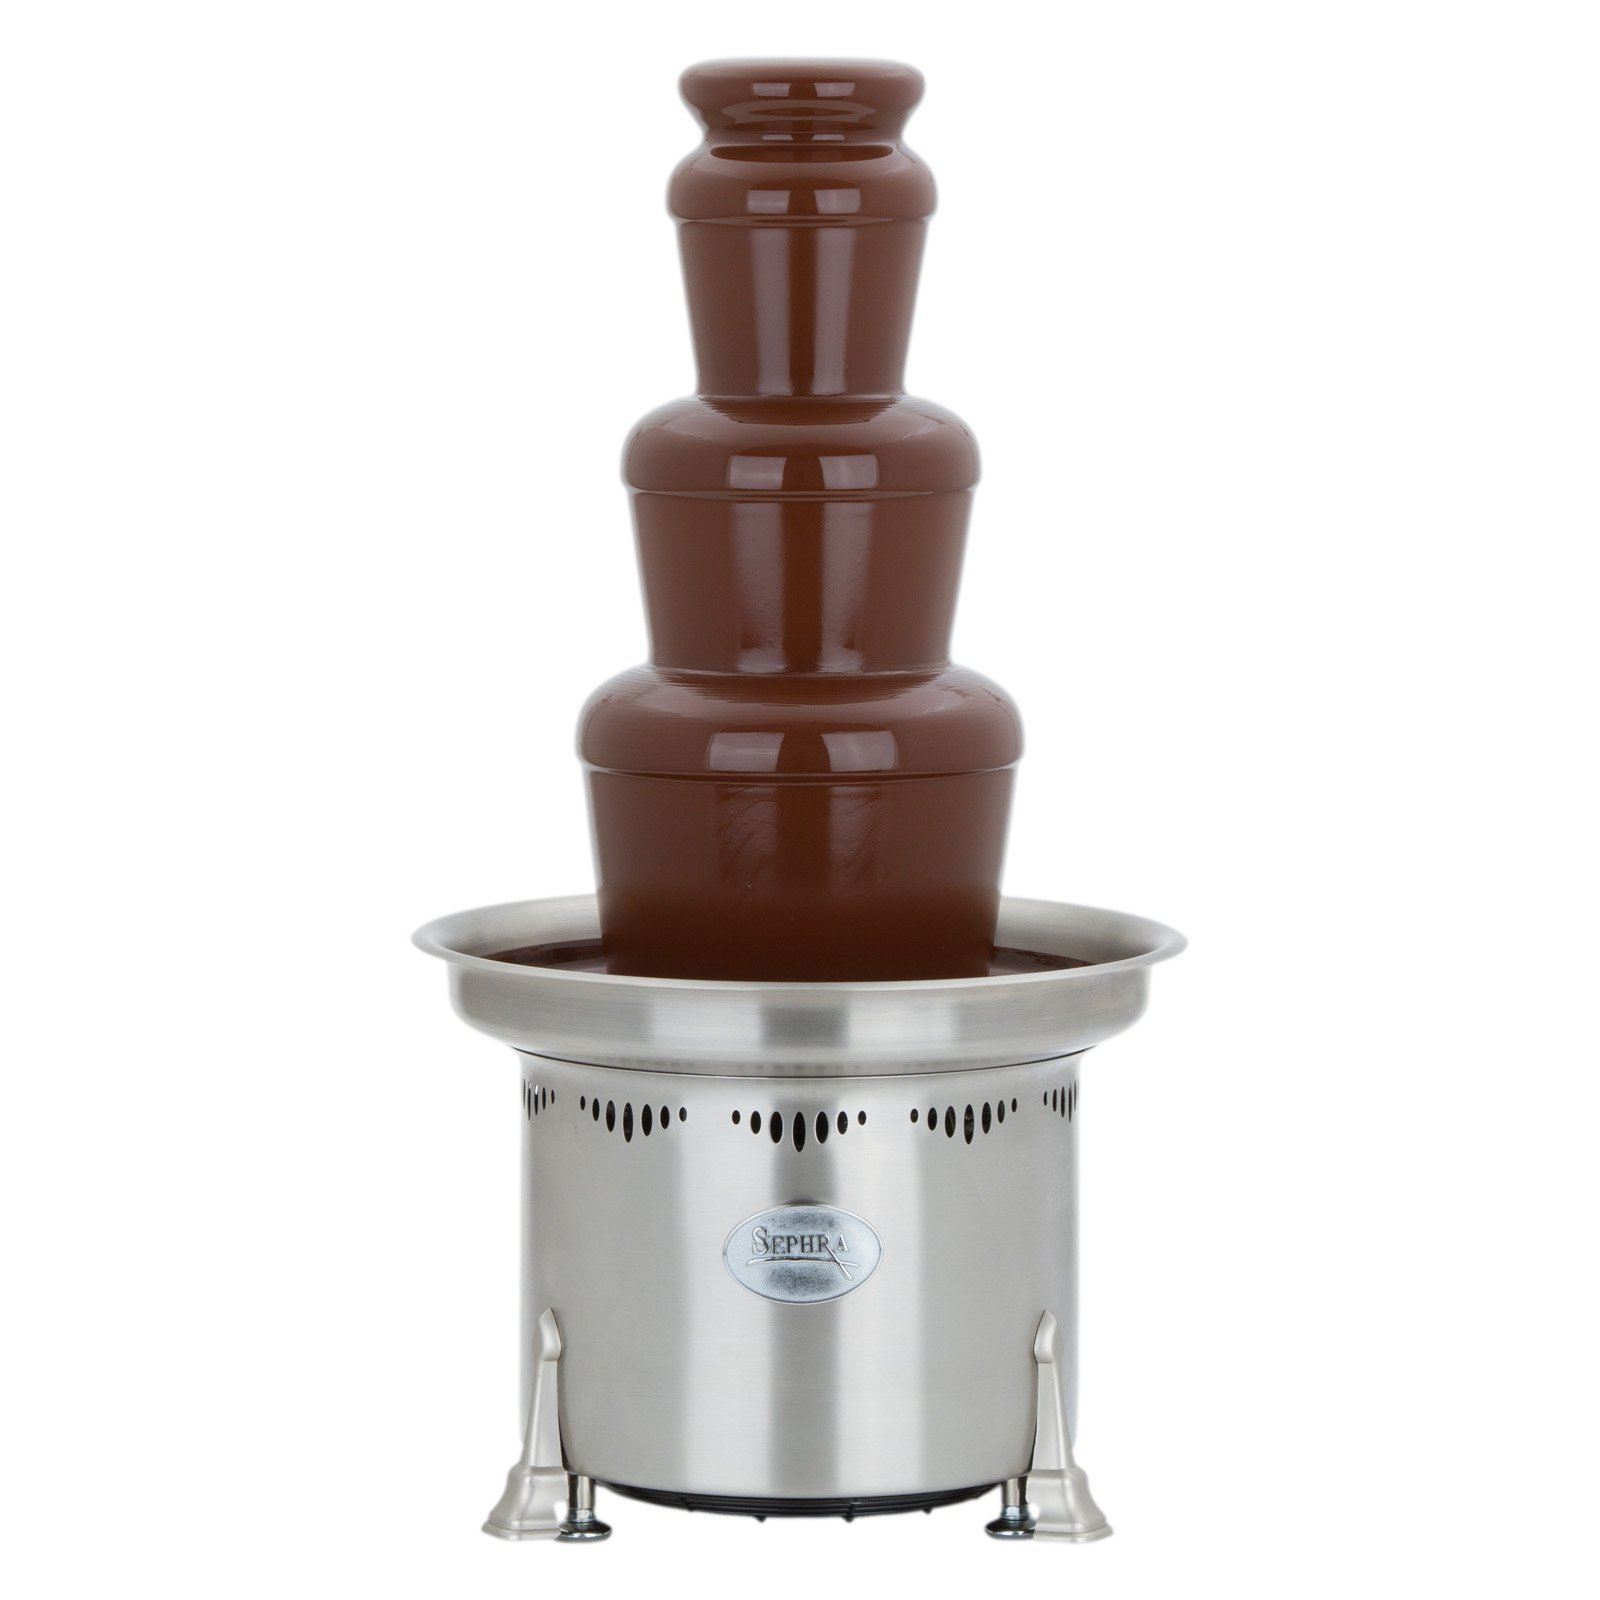 Sephra 27 Inch Stainless Steel Commercial Chocolate Fountain ...